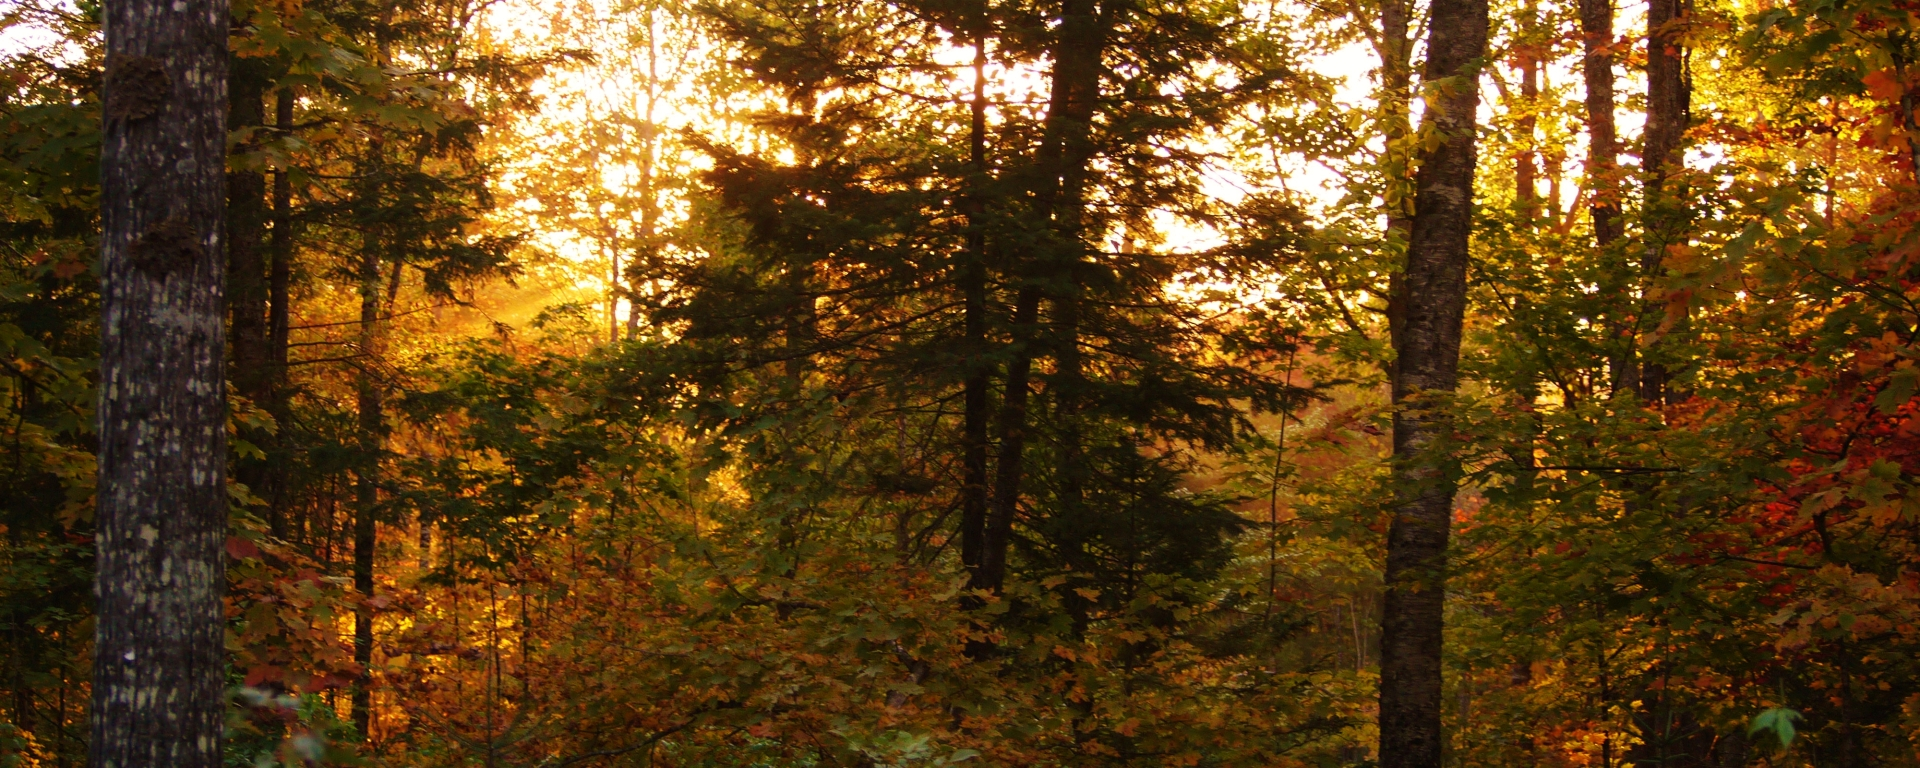 maine, fall, forest, foliage